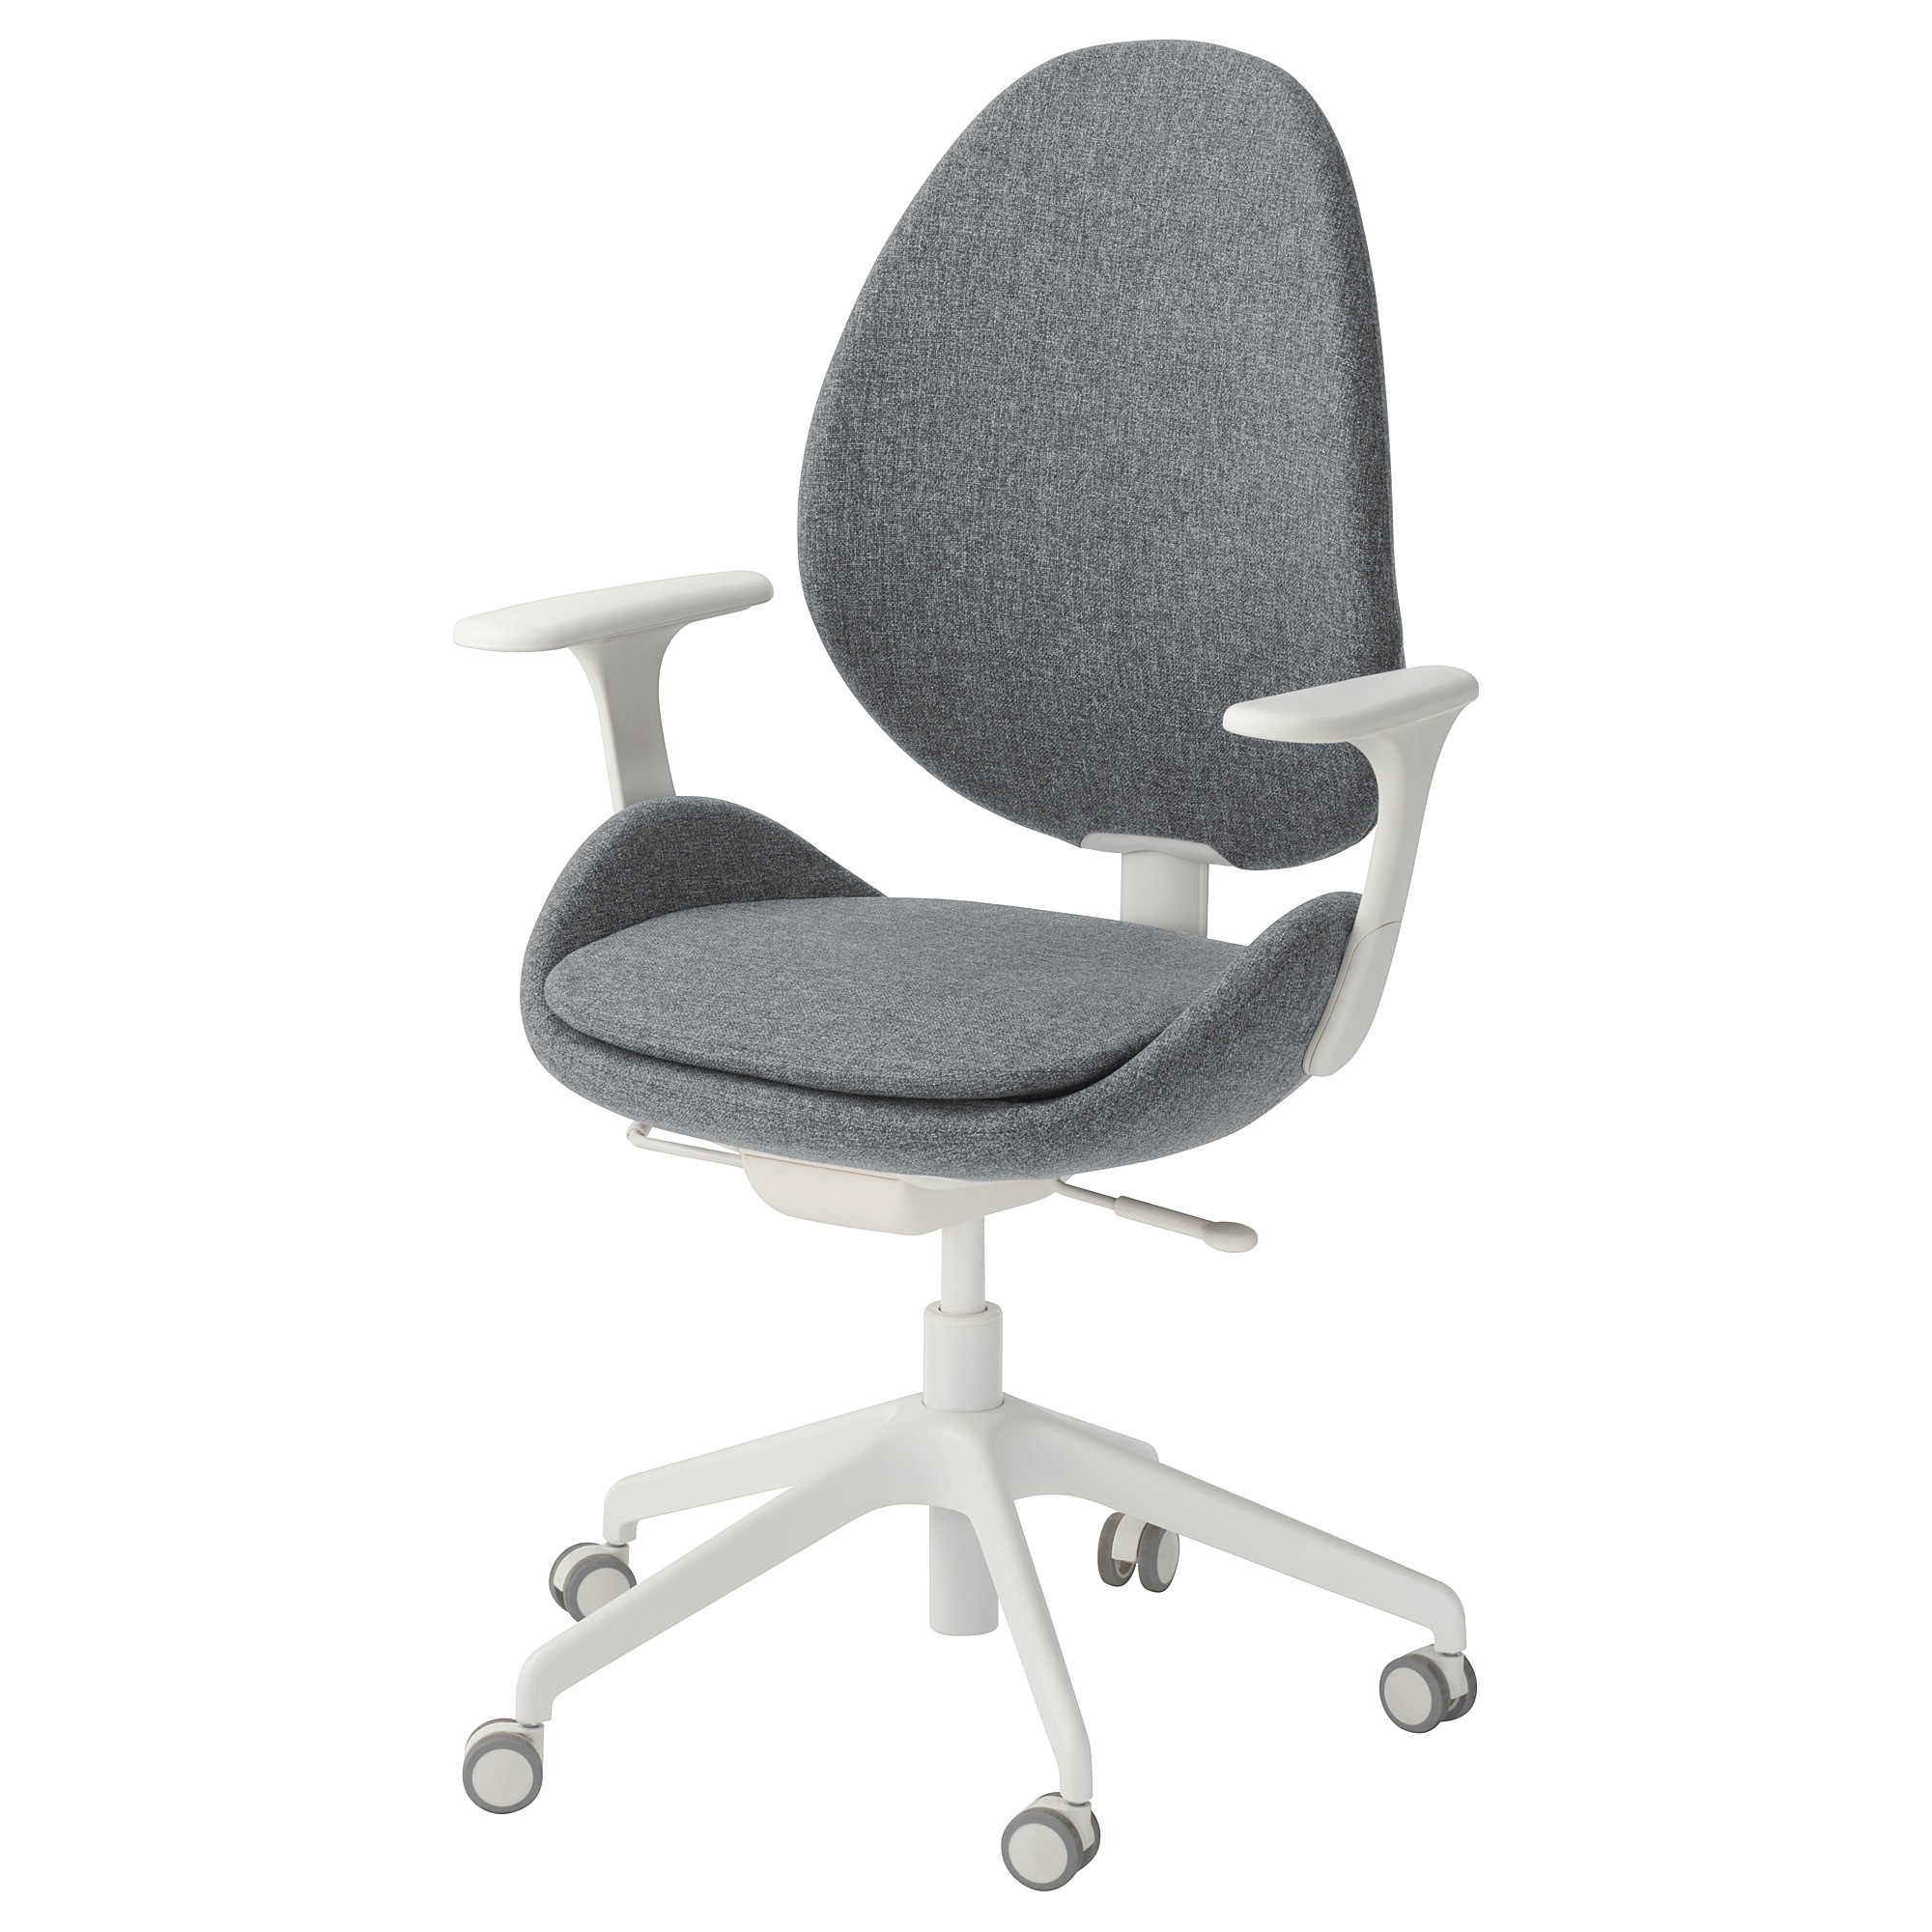 Hattefjäll Swivel Chair With Armrests Gunnared Medium Grey/white – Ikea Inside Grey Swivel Chairs (View 18 of 25)